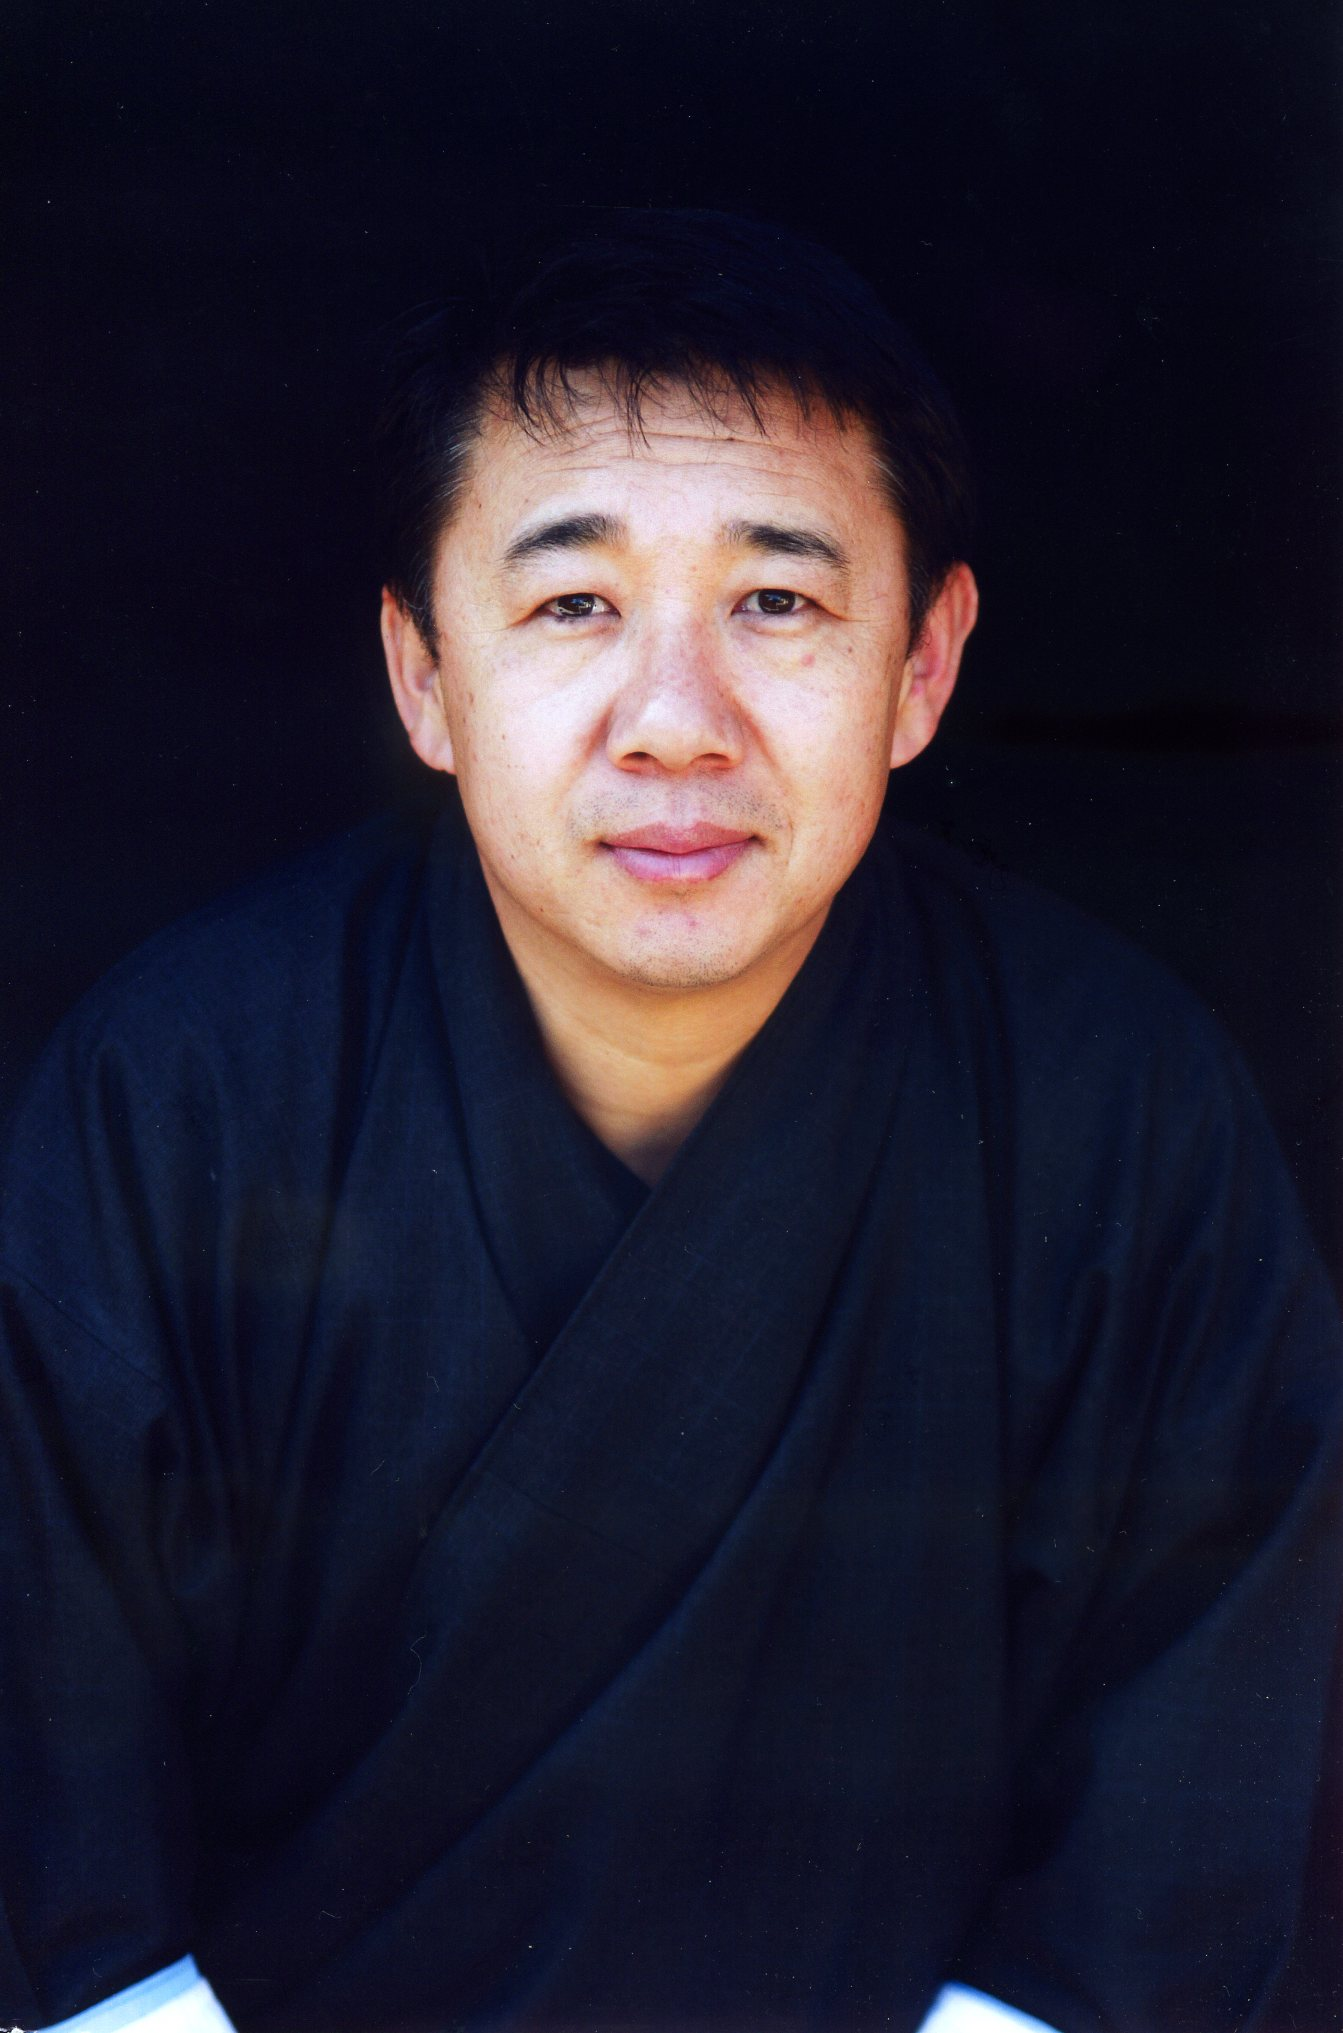 Dasho Ugyen Tsechup Dorji (President of the Bhutan Football Federation)